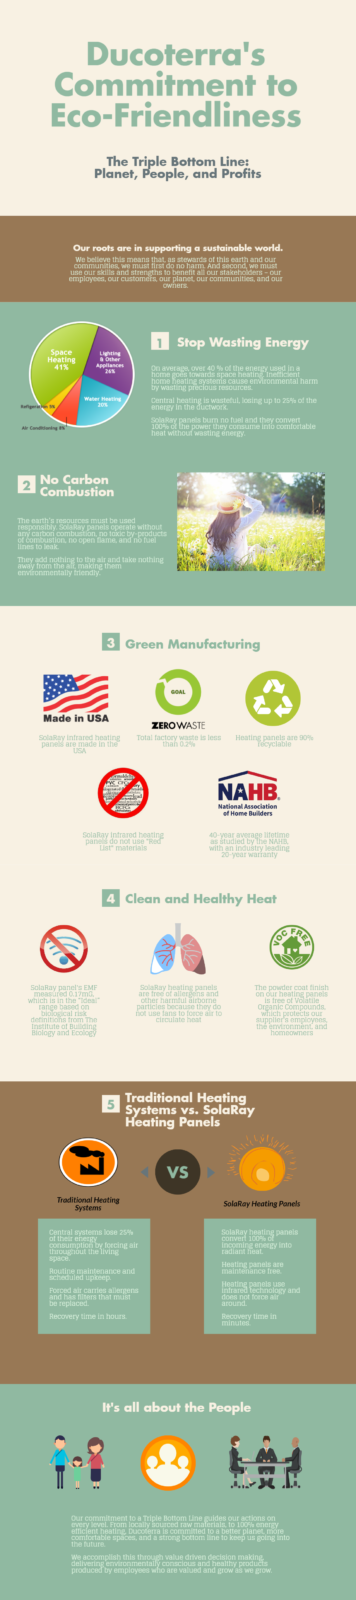 Ducoterra's Commitment to Eco-Friendliness Infographic